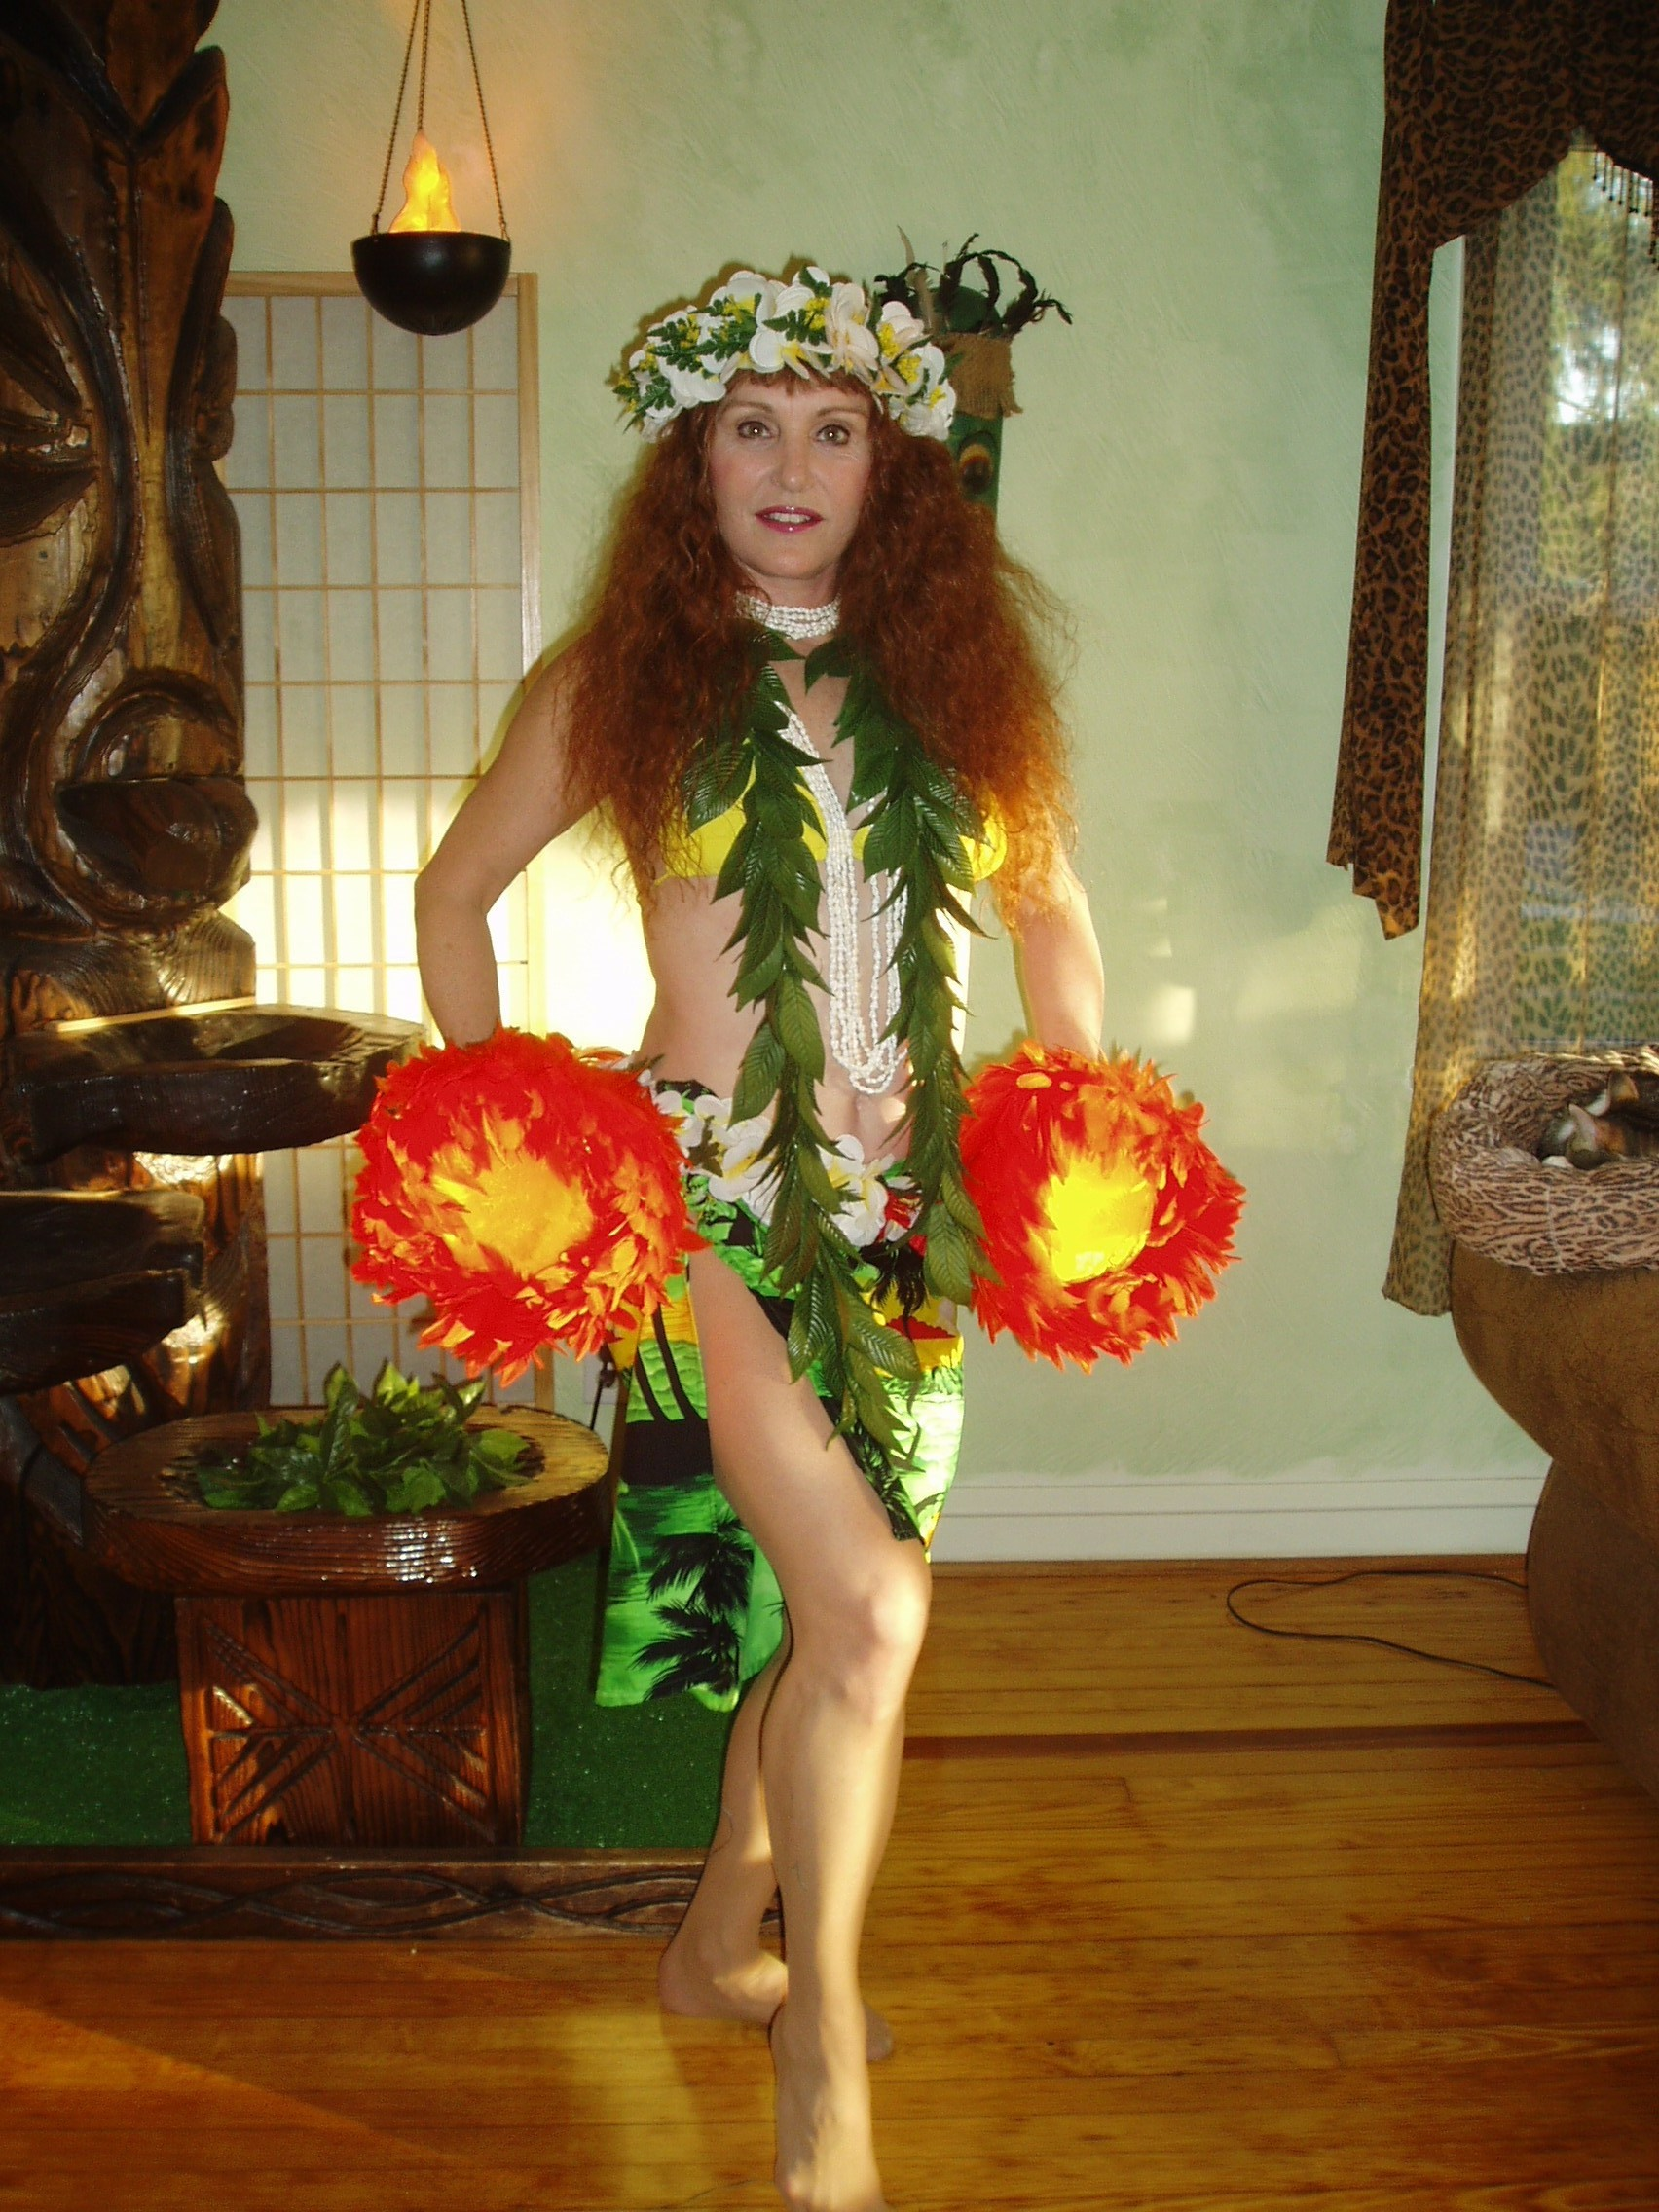 Hire Hula Dancers in New Jersey, NJ Hawaiian Hula Dancer, Belly Dancers, Hawaiian Luau Dancer NJ, Luau Party Dancer in NJ, Kid's Hula Party, Hula Dancing in NJ, Hula entertainment, Hawaiian Luau Dancers, Children's Hula Party, Hula entertainers, Hula Show NJ, Luau party entertainment